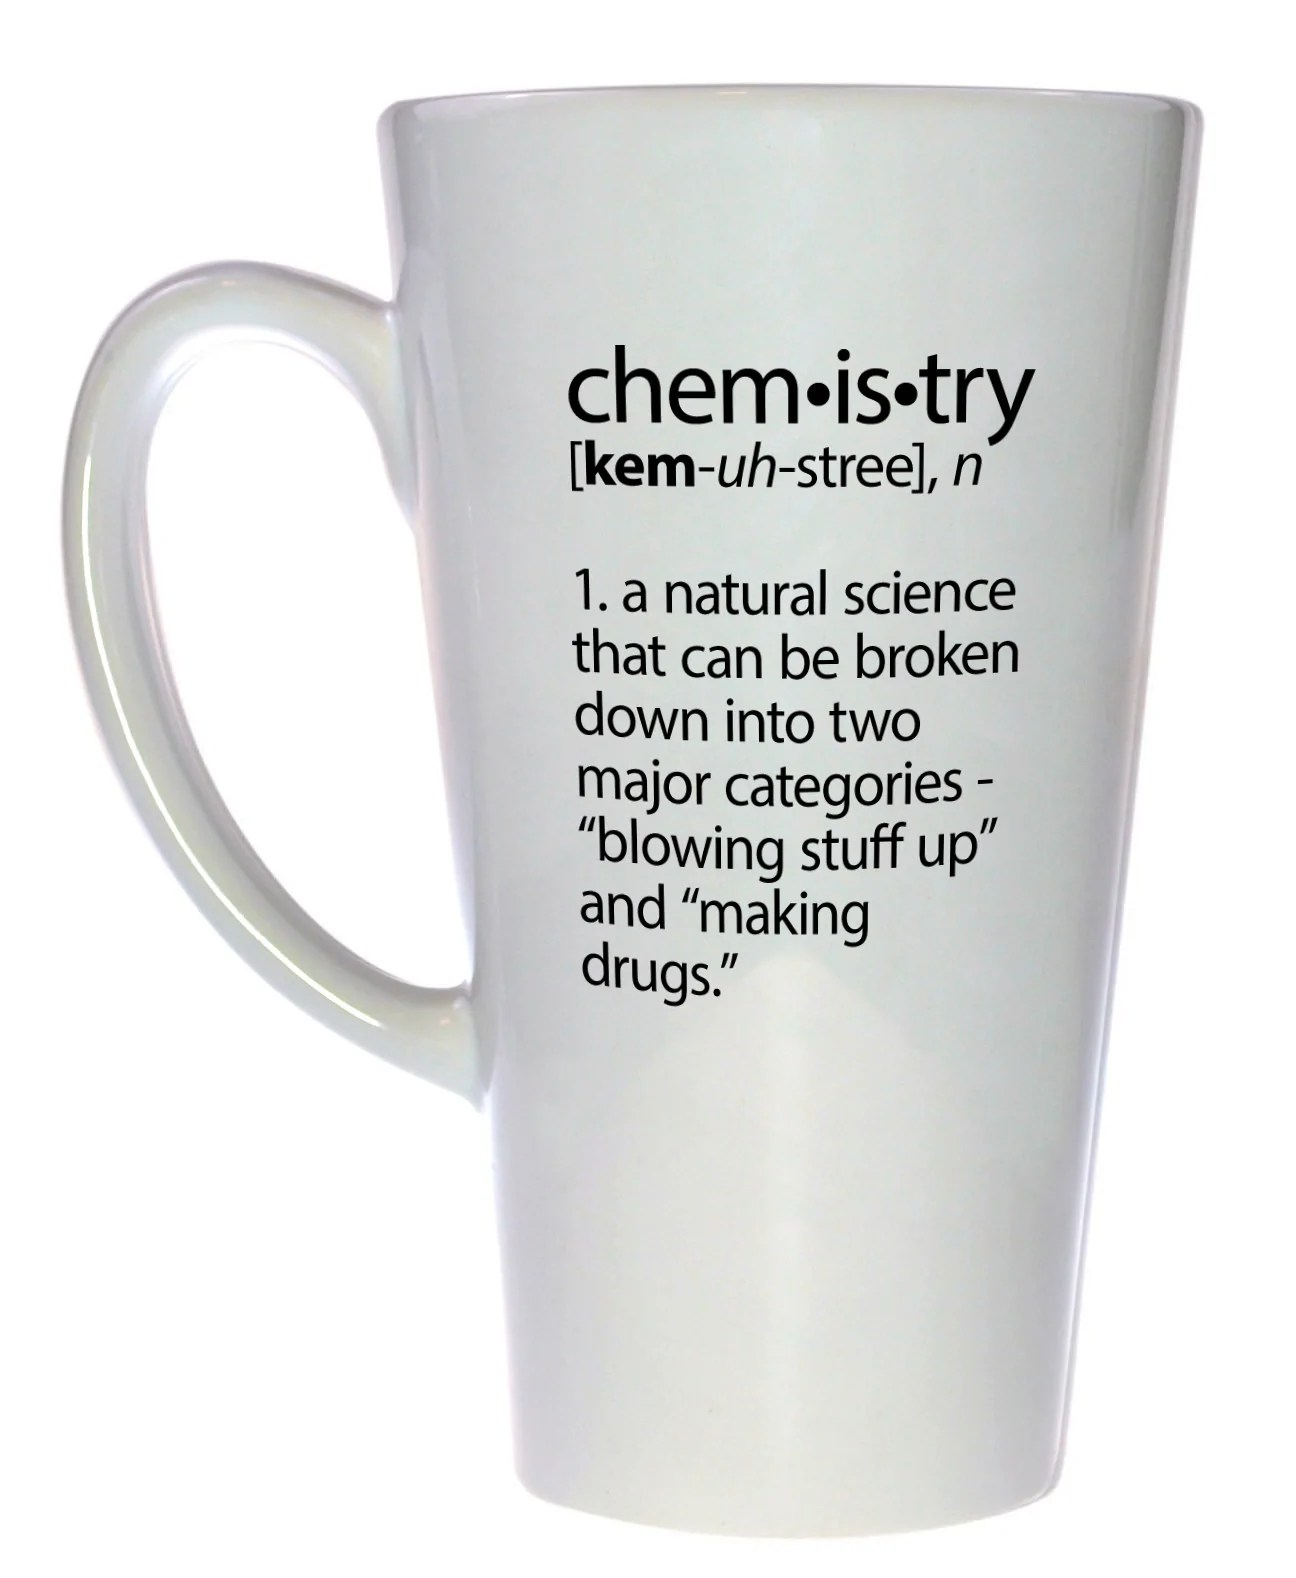 Showy Chemistry Definition Tall Coffee Or Tea Latte Size Chemistry Definition Tall Coffee Or Tea Latte Size Neurons Latte Coffee Cups Uk Ceramic Latte Coffee Mugs furniture Latte Coffee Mugs